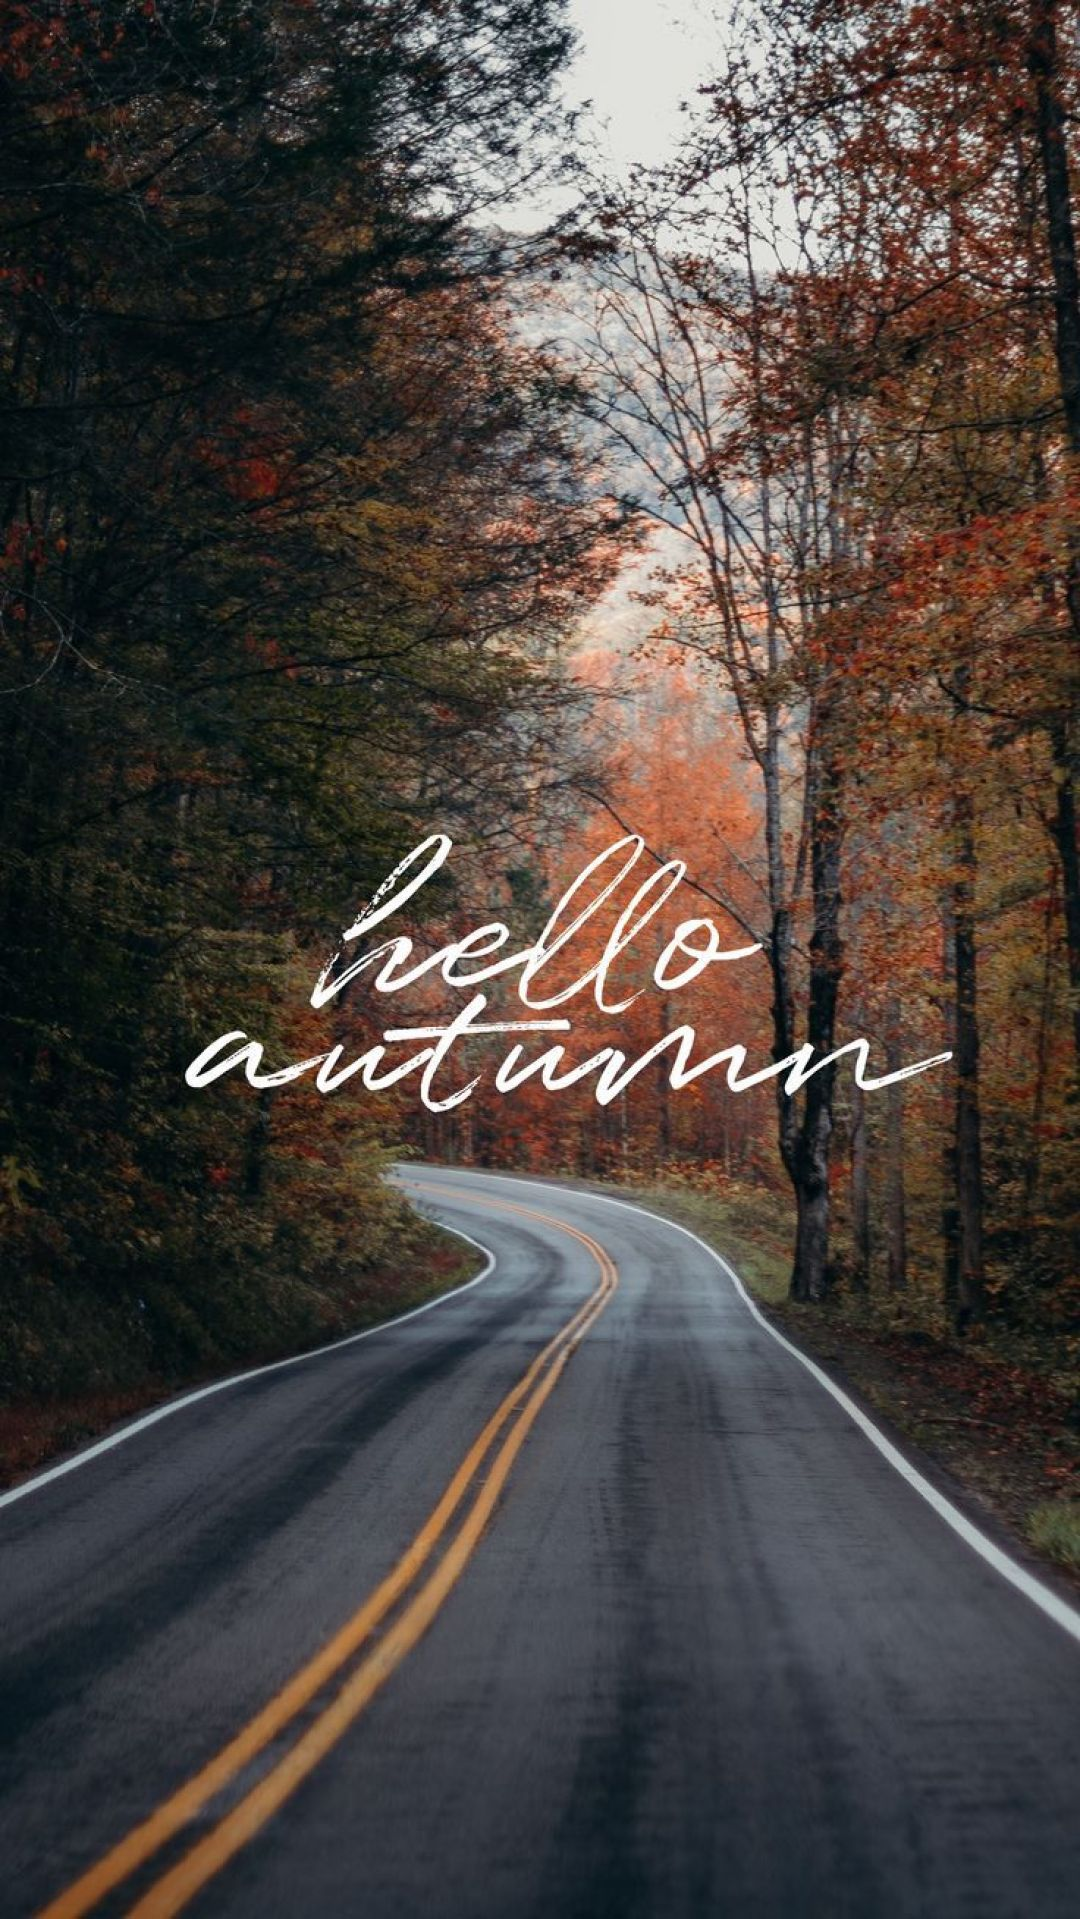 55 Hello Autumn Aesthetic Hd Wallpapers Desktop Background Android Iphone 1080p 4k 1080x1919 2020